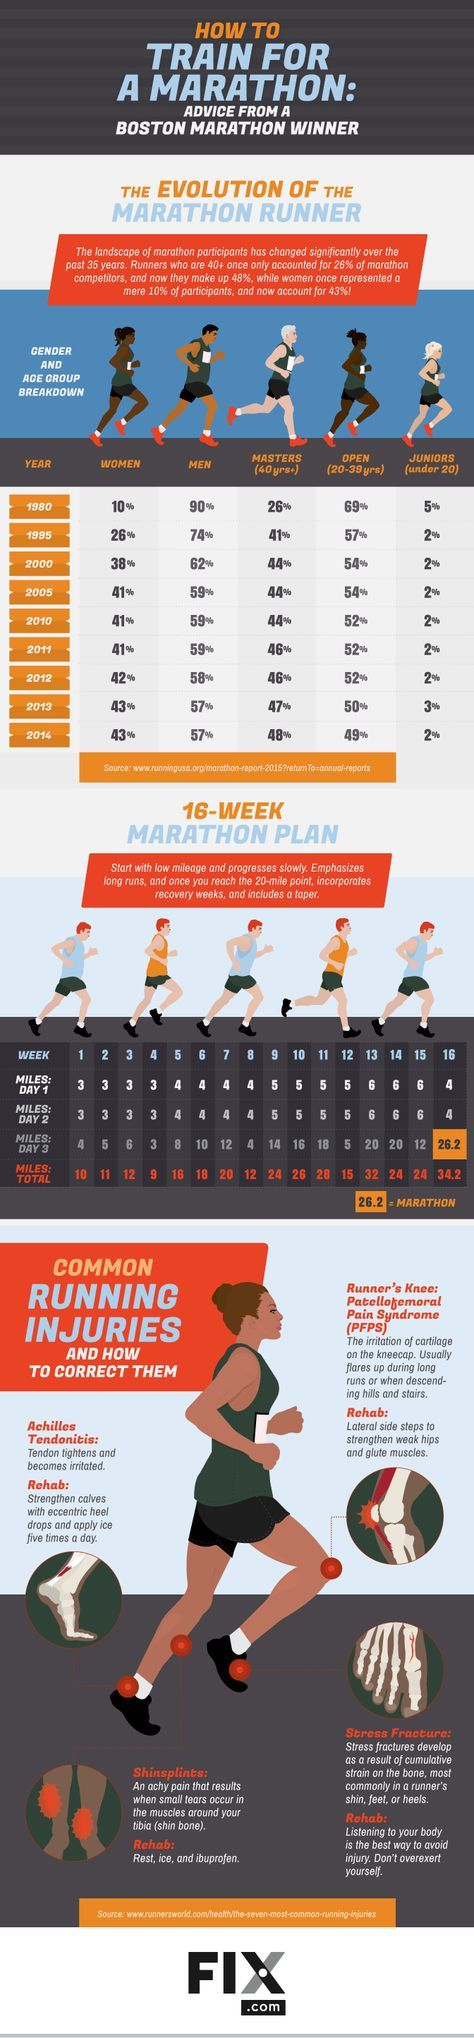 Interested in training for a marathon but don't know where to start? Boston Marathon winner, Amby Burfoot, teaches you everything you need to know to successfully run 26.2 miles!